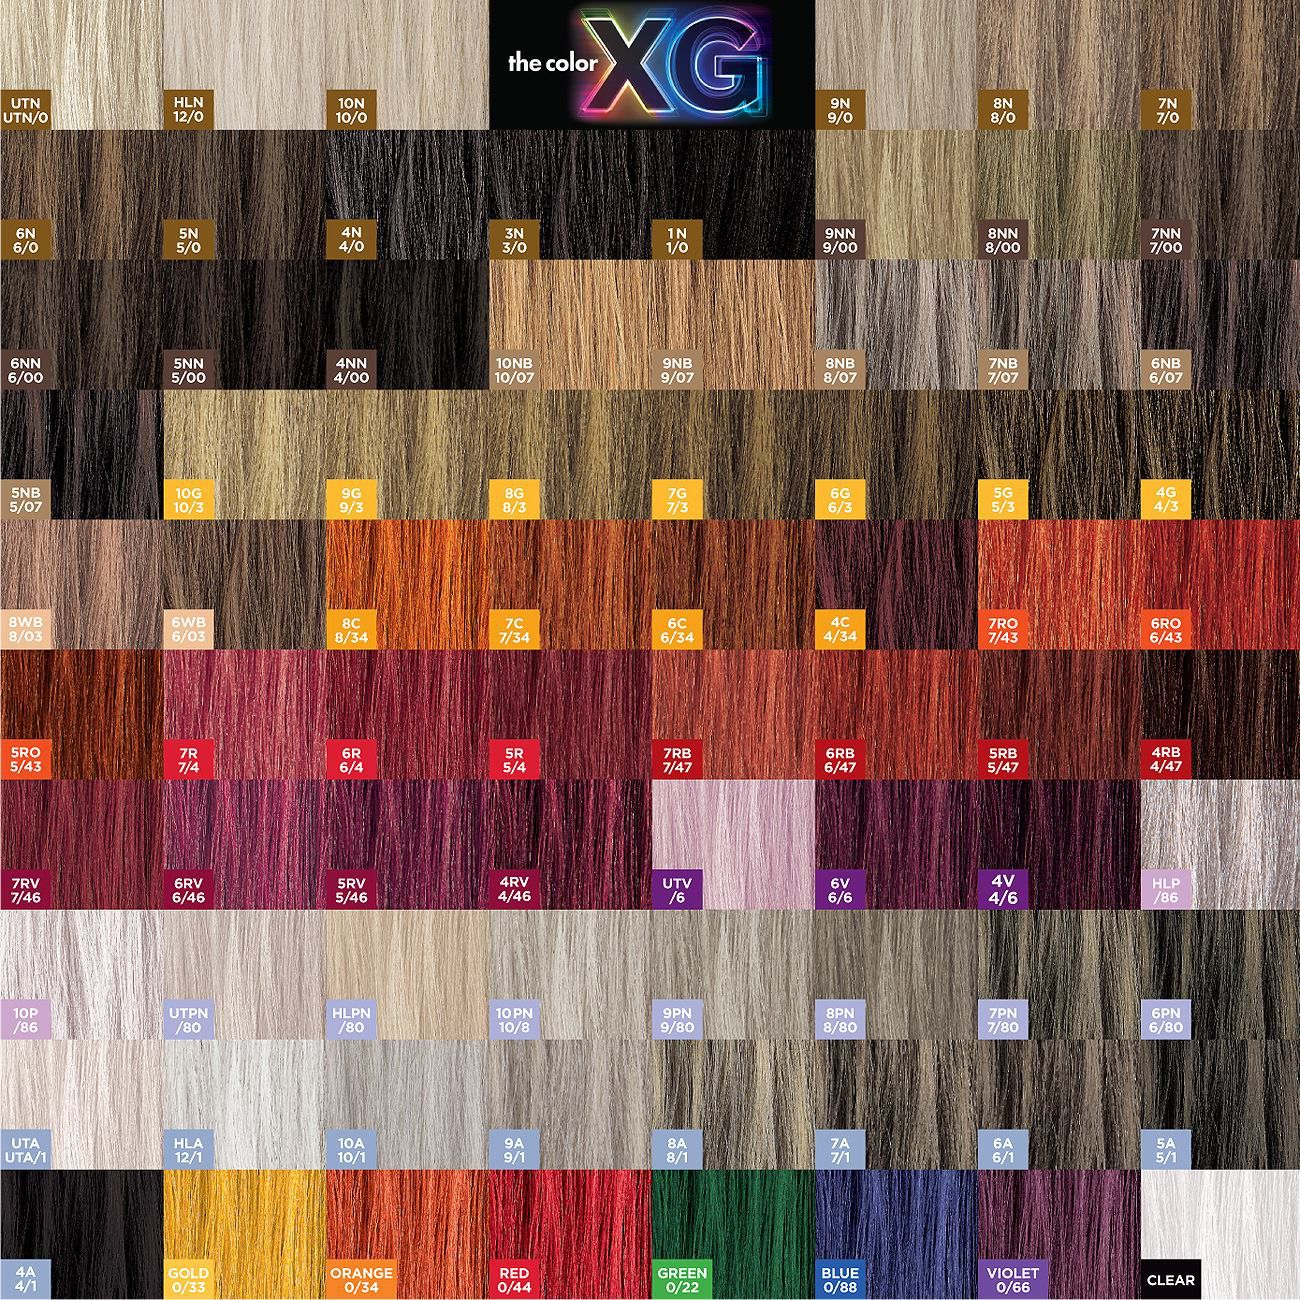 Color lines online strip game - Paul Mitchell Xg The Color Shades Patchwork